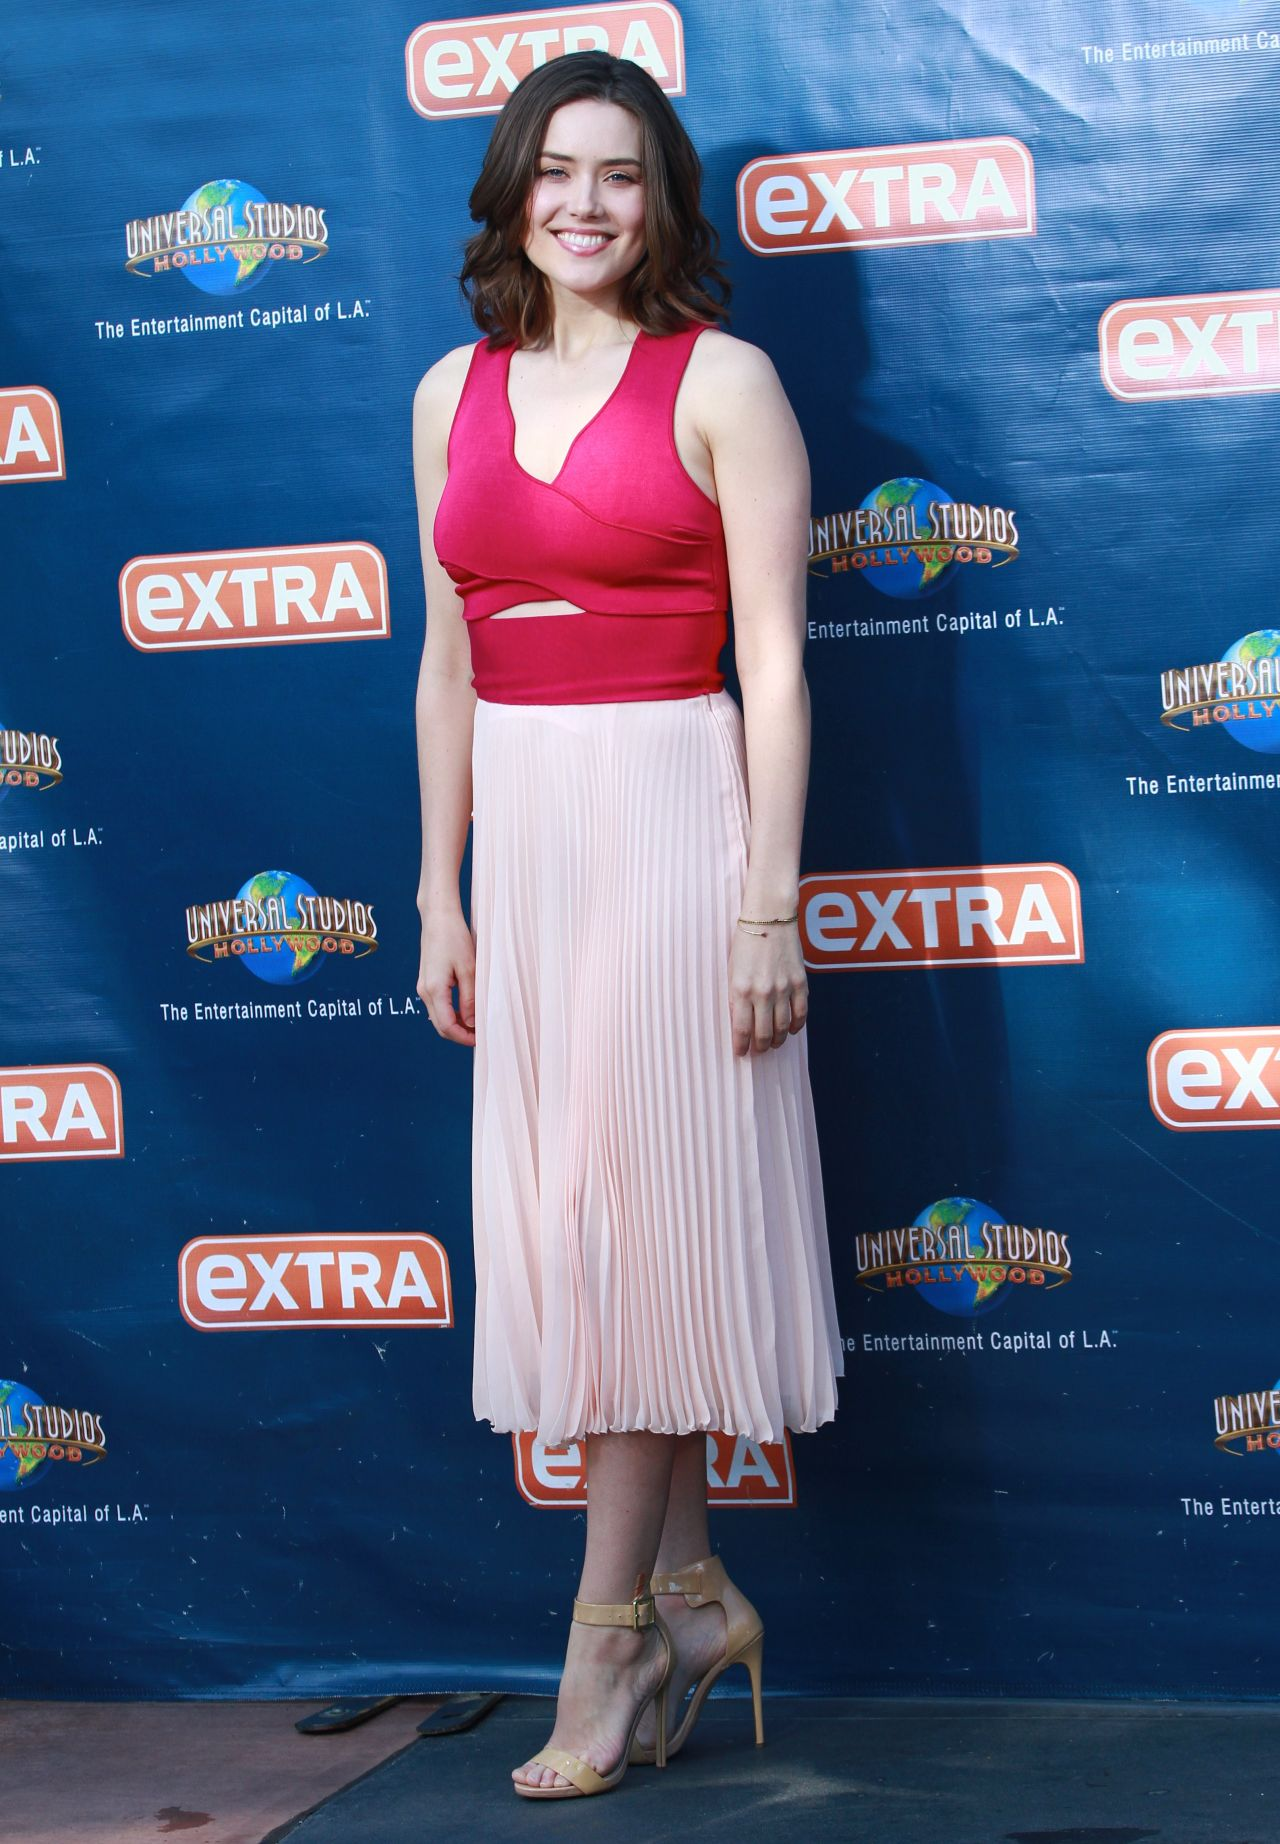 Megan Boone On The Set Of Extra In Universal City